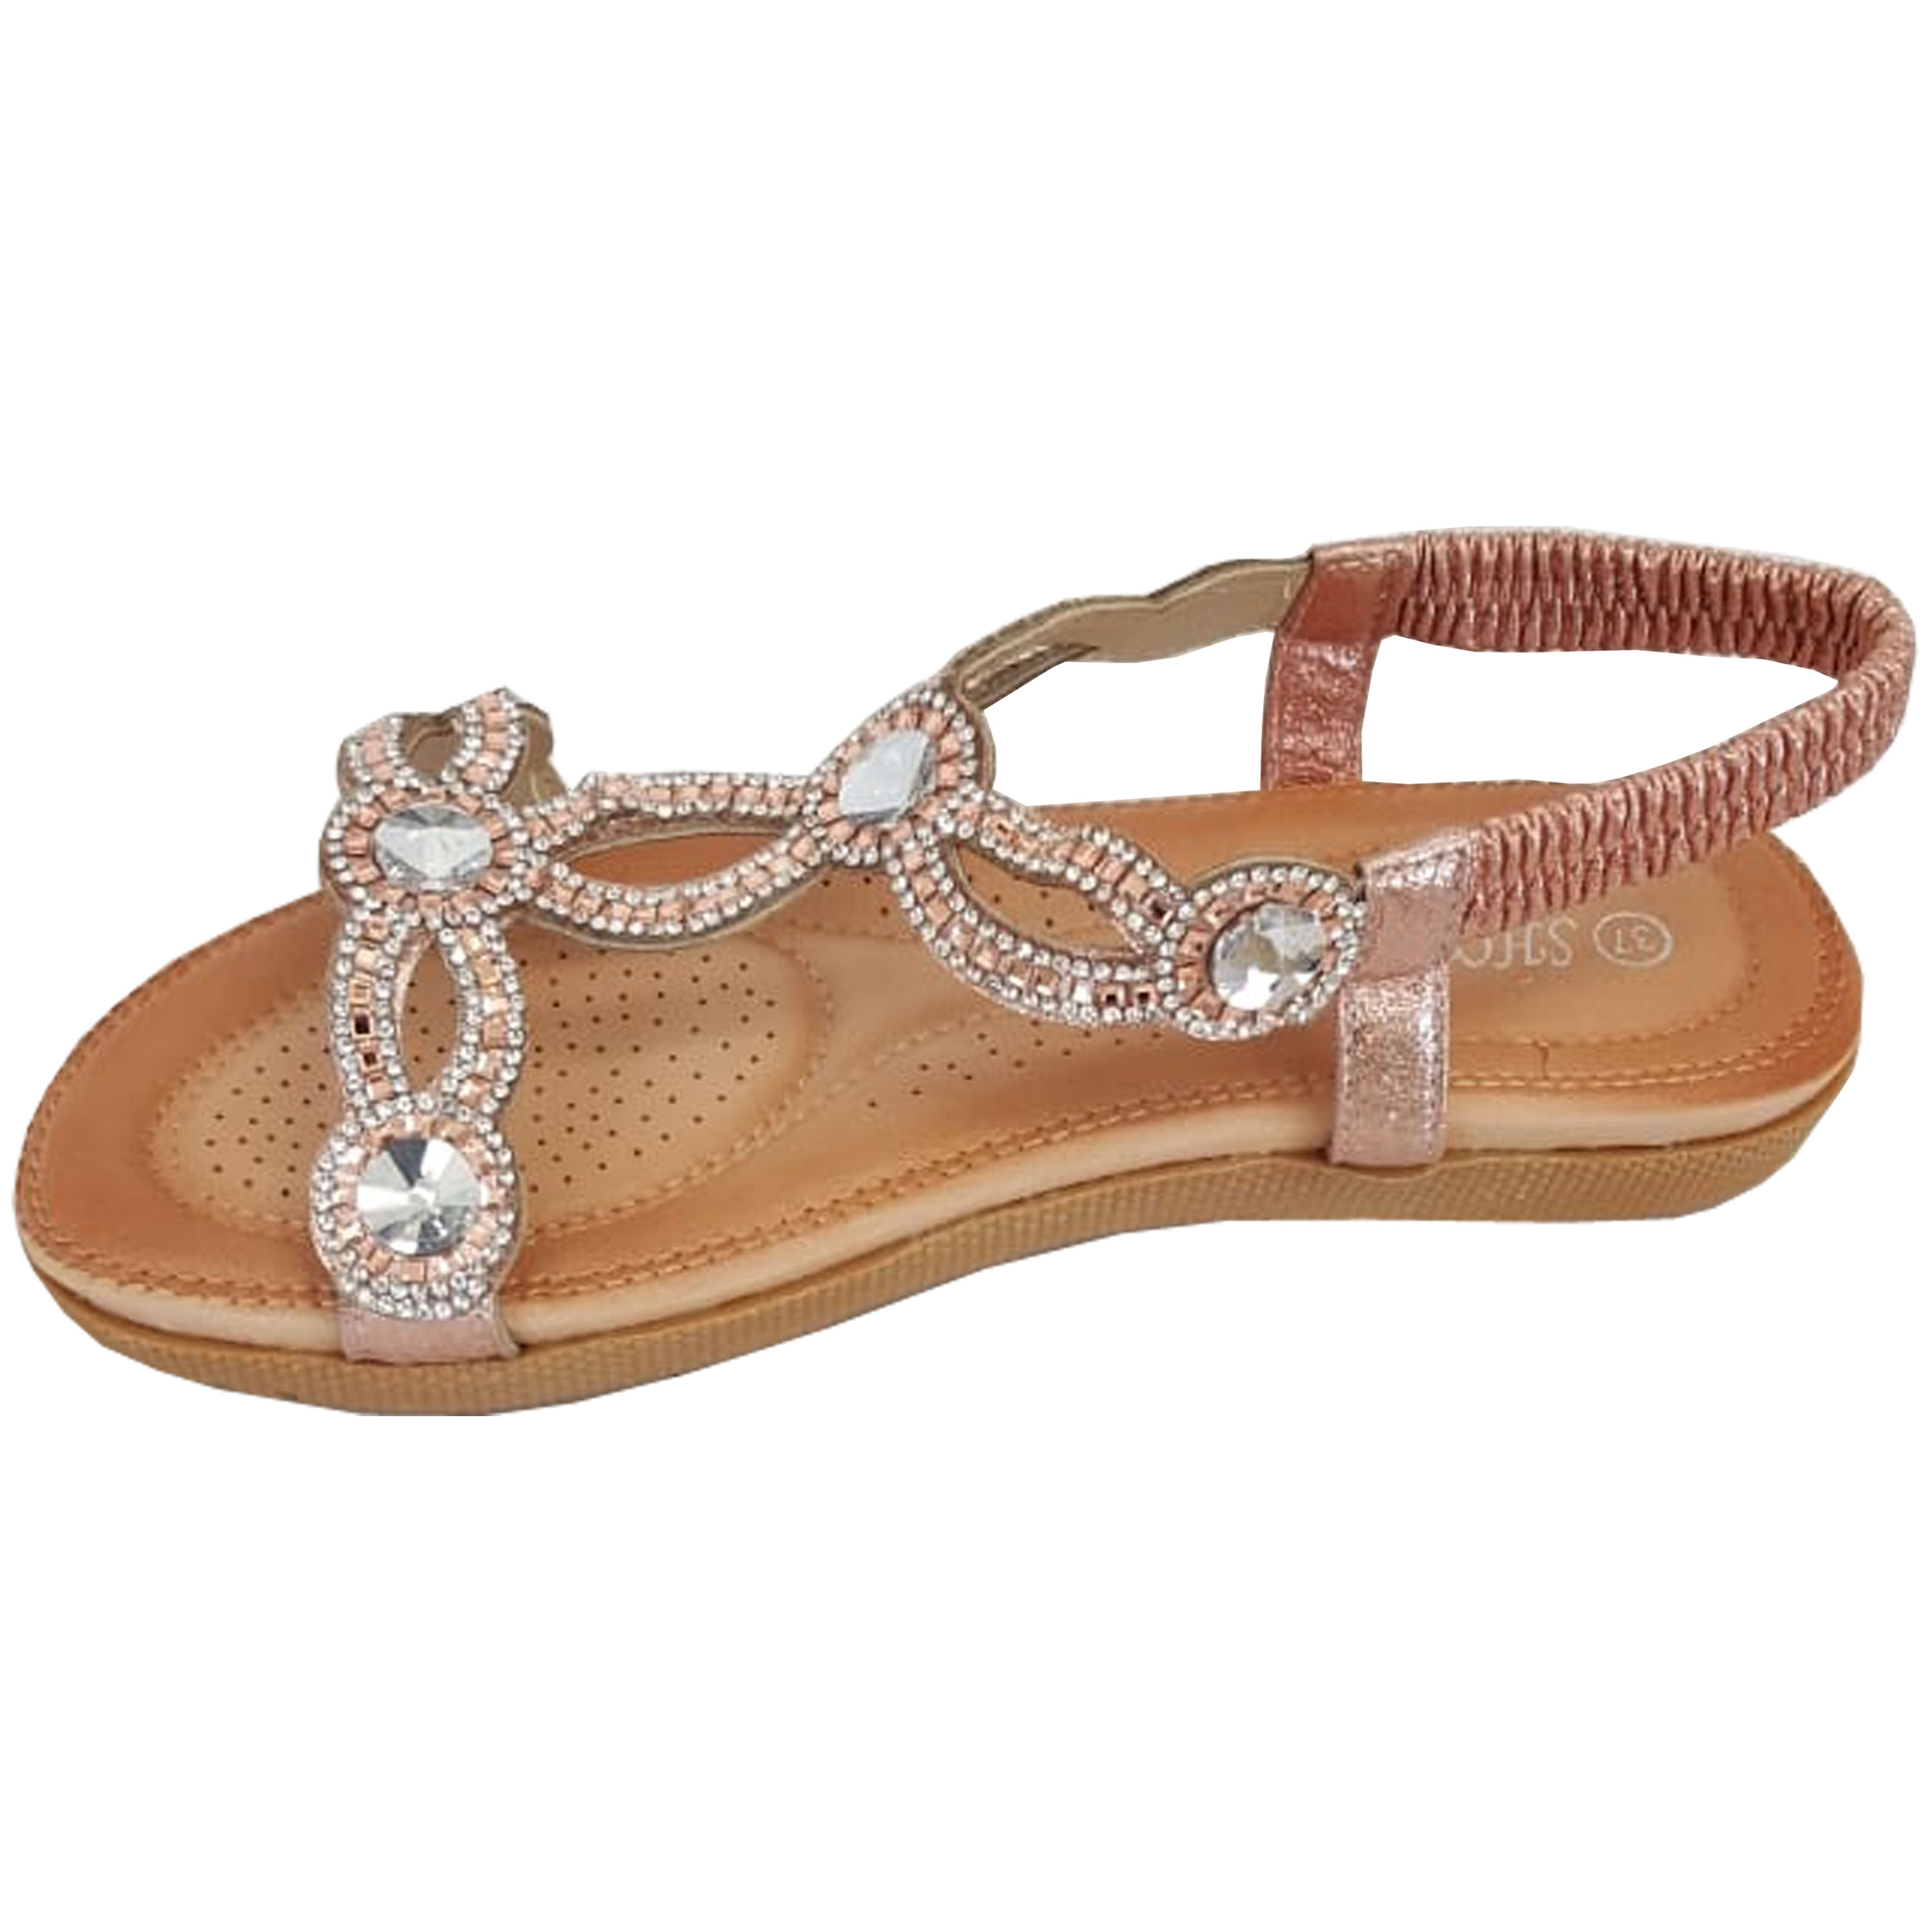 Ladies-Sandals-Womens-Diamante-Sling-Back-Open-Toe-Post-Shoes-Fashion-Summer-New thumbnail 10